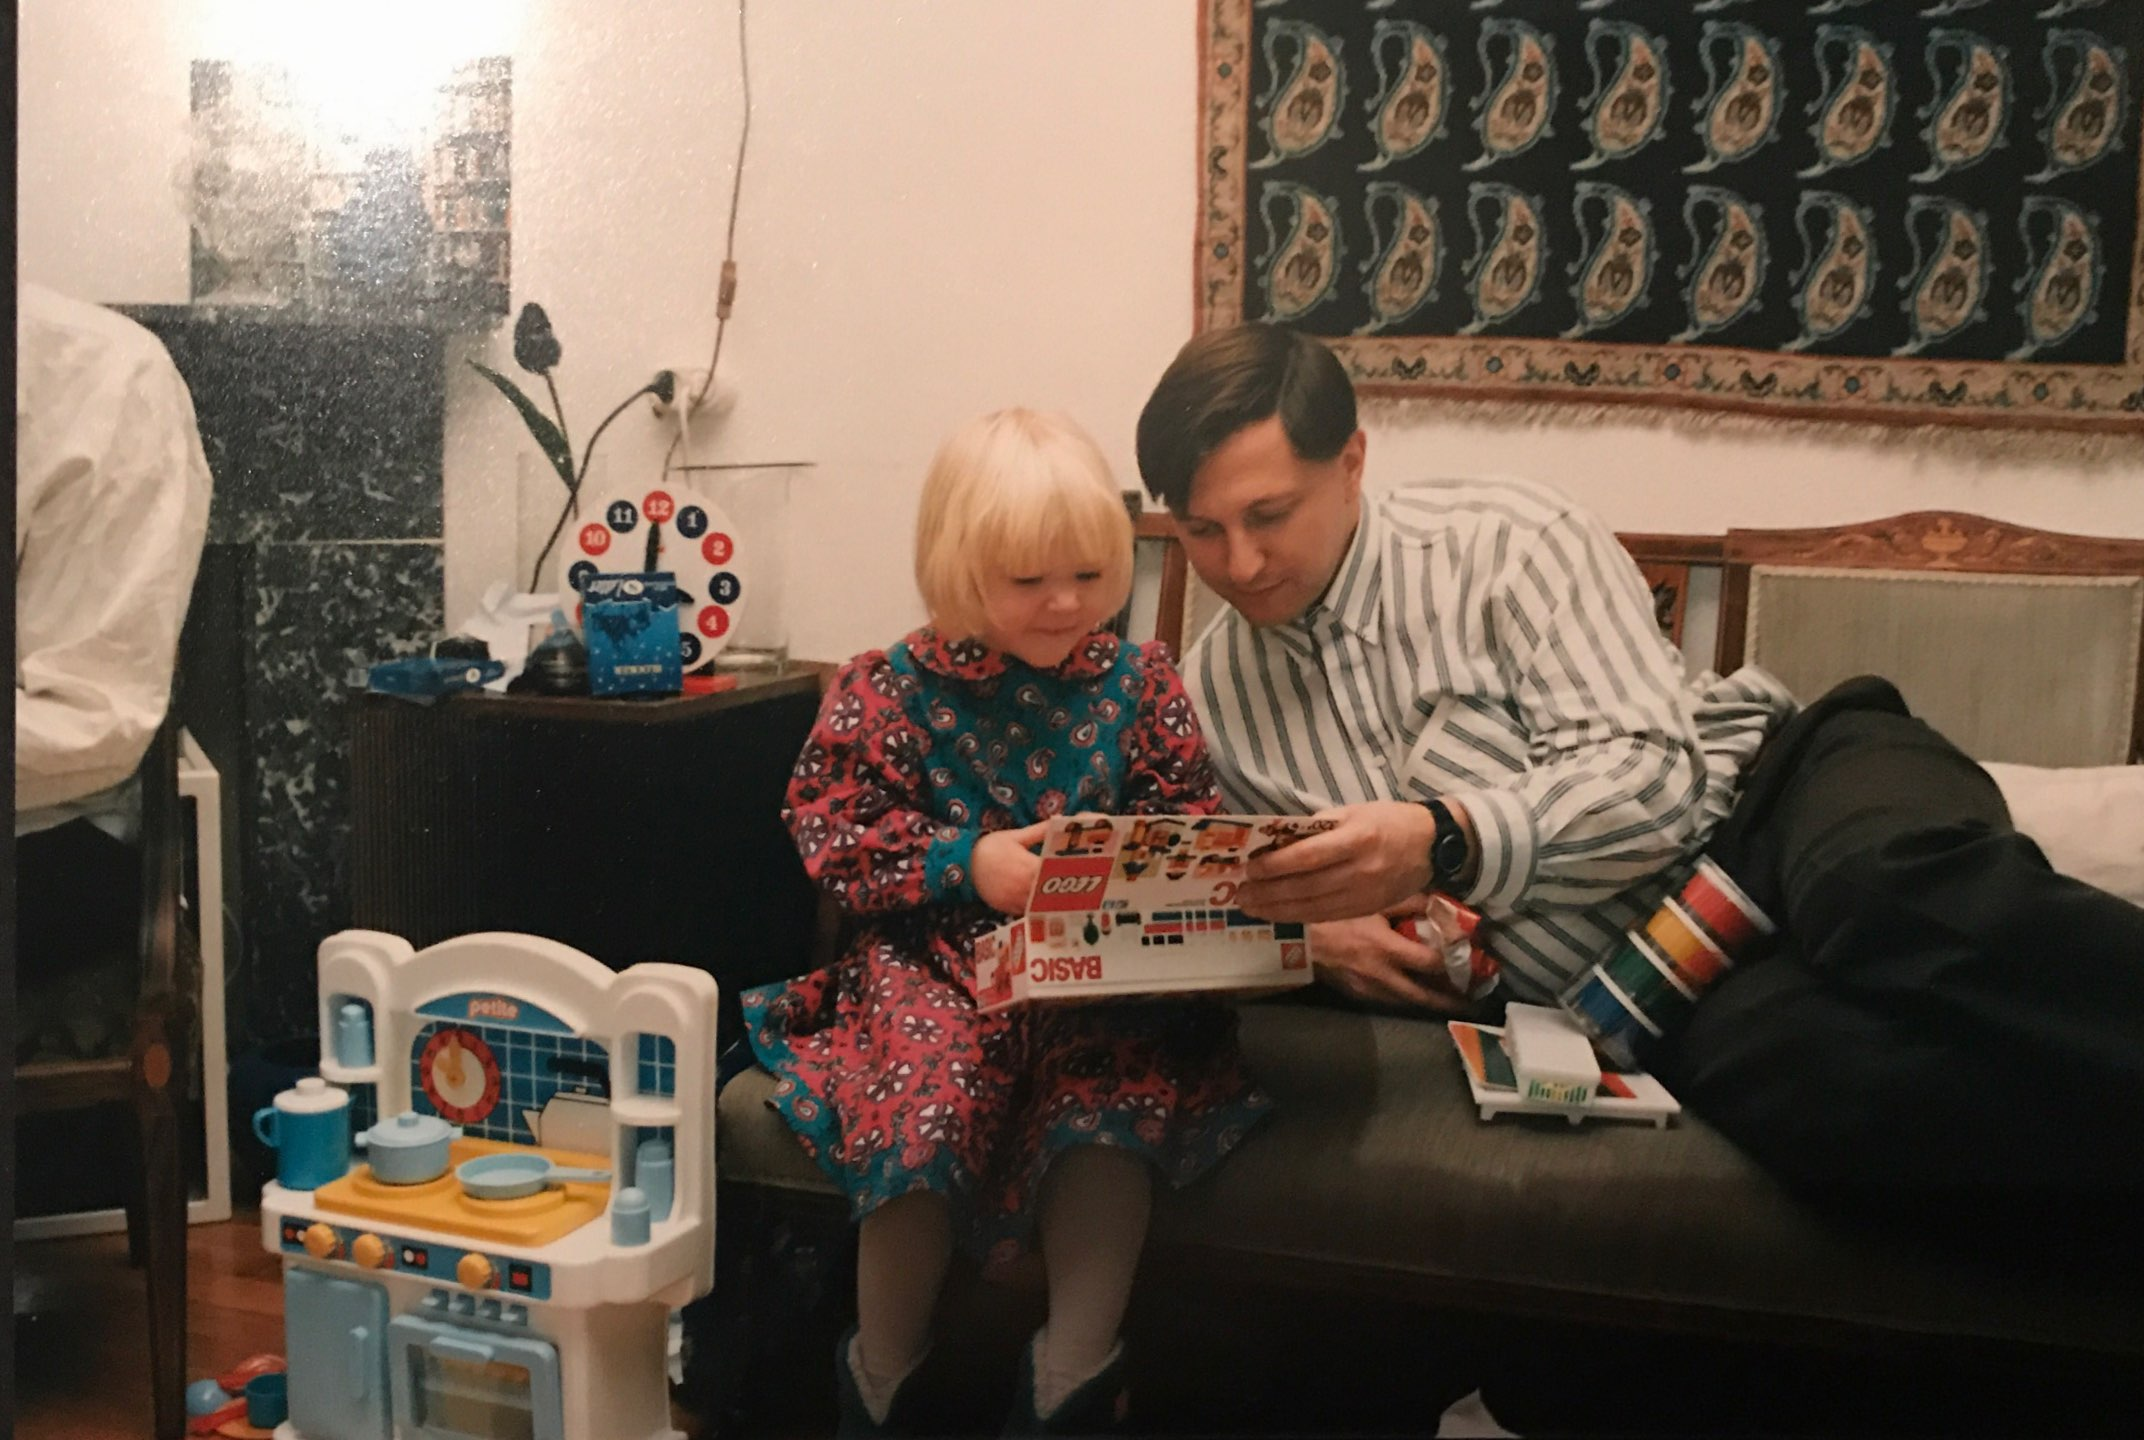 Me and my dad back in the nineties. I love my family very much and in the beginning my parents were taken aback by the news that I was going to travel the world. Now they follow me around and are incredibly supportive with all my adventures.